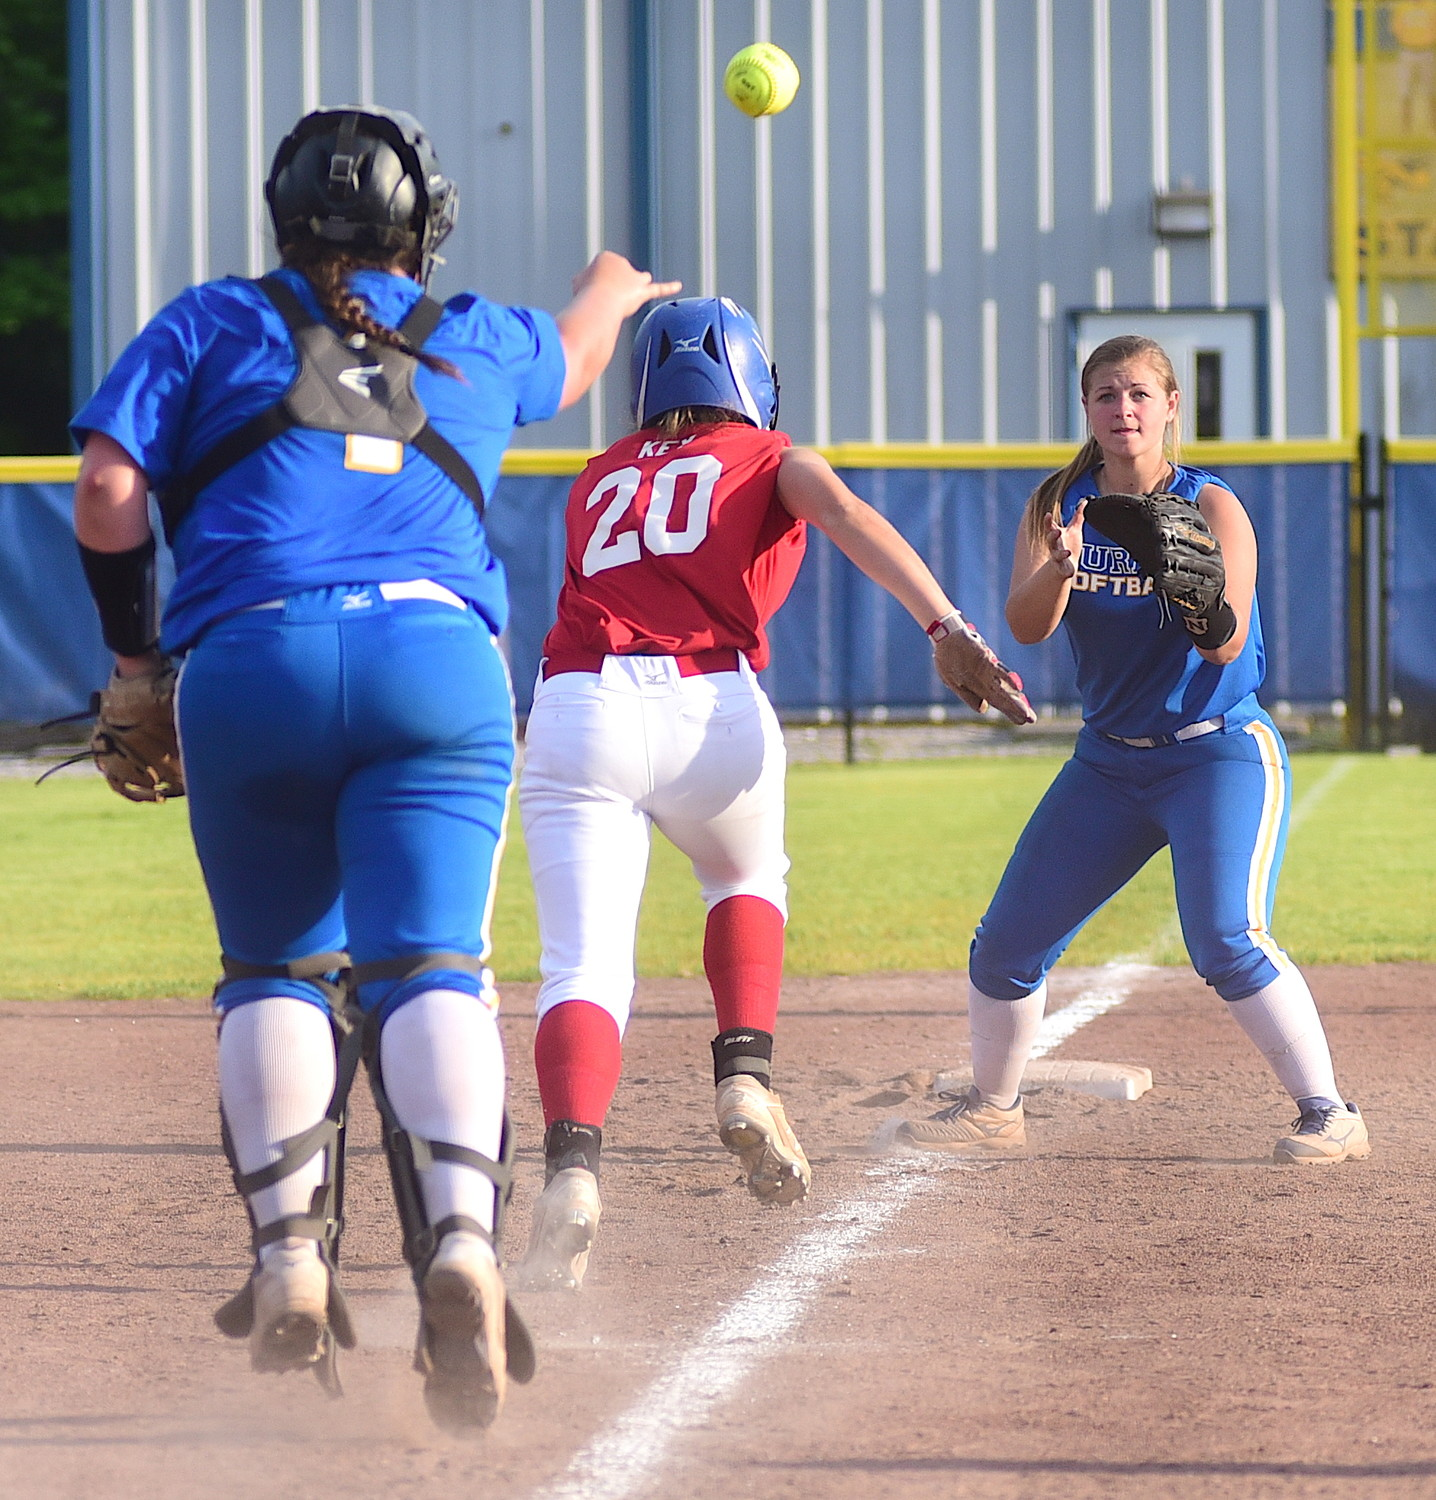 Curry players catch a Cordova baserunner in a rundown during Tuesday's game.